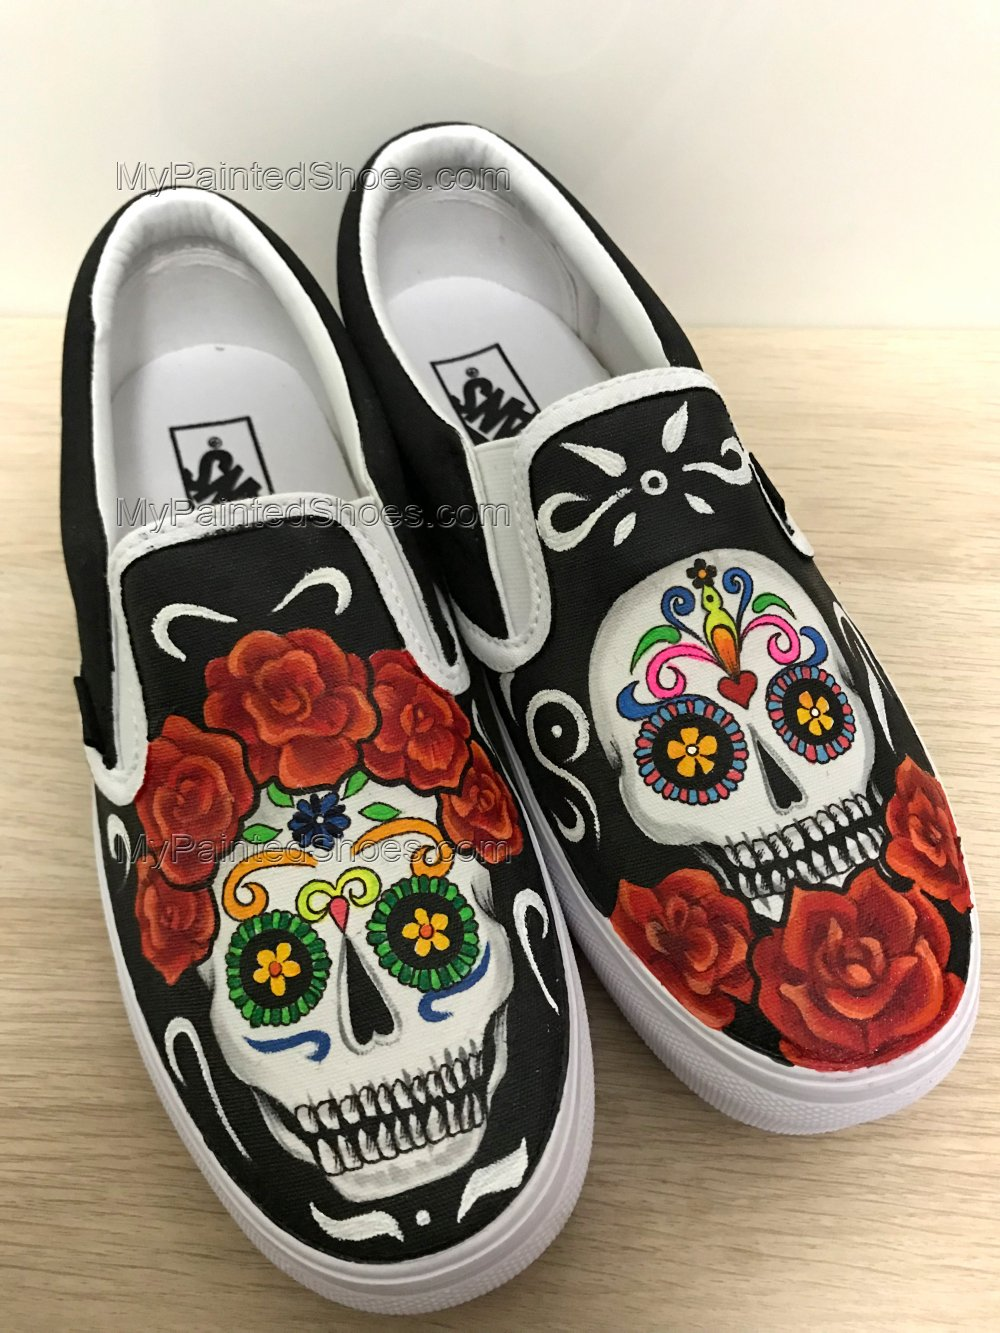 Skull Vans Shoes Custom Vans Sneakers-2